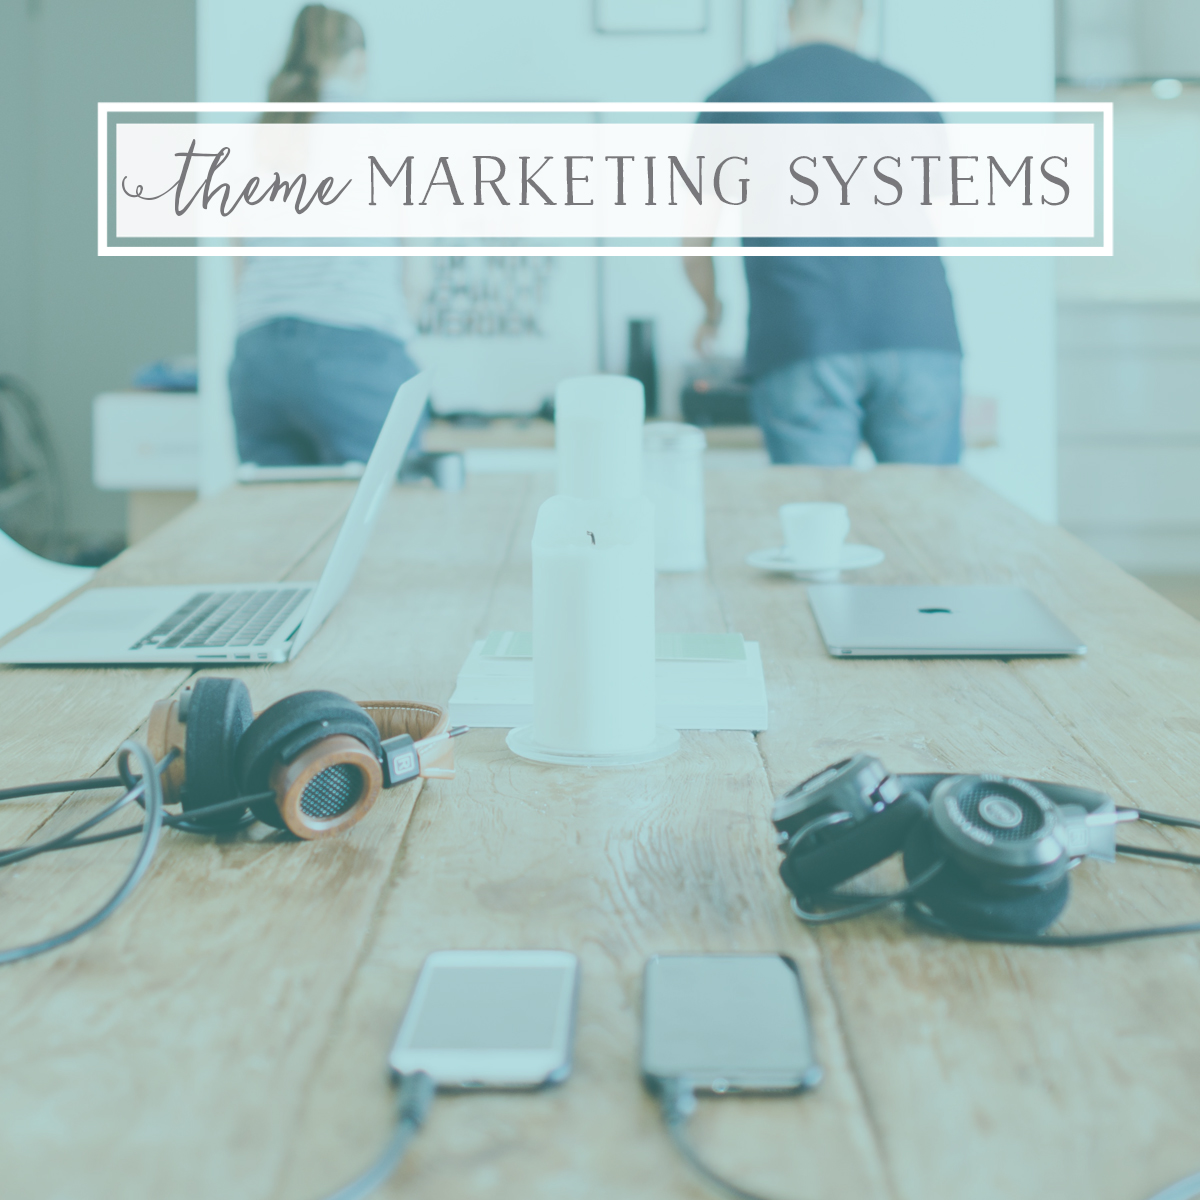 Marketing Systems